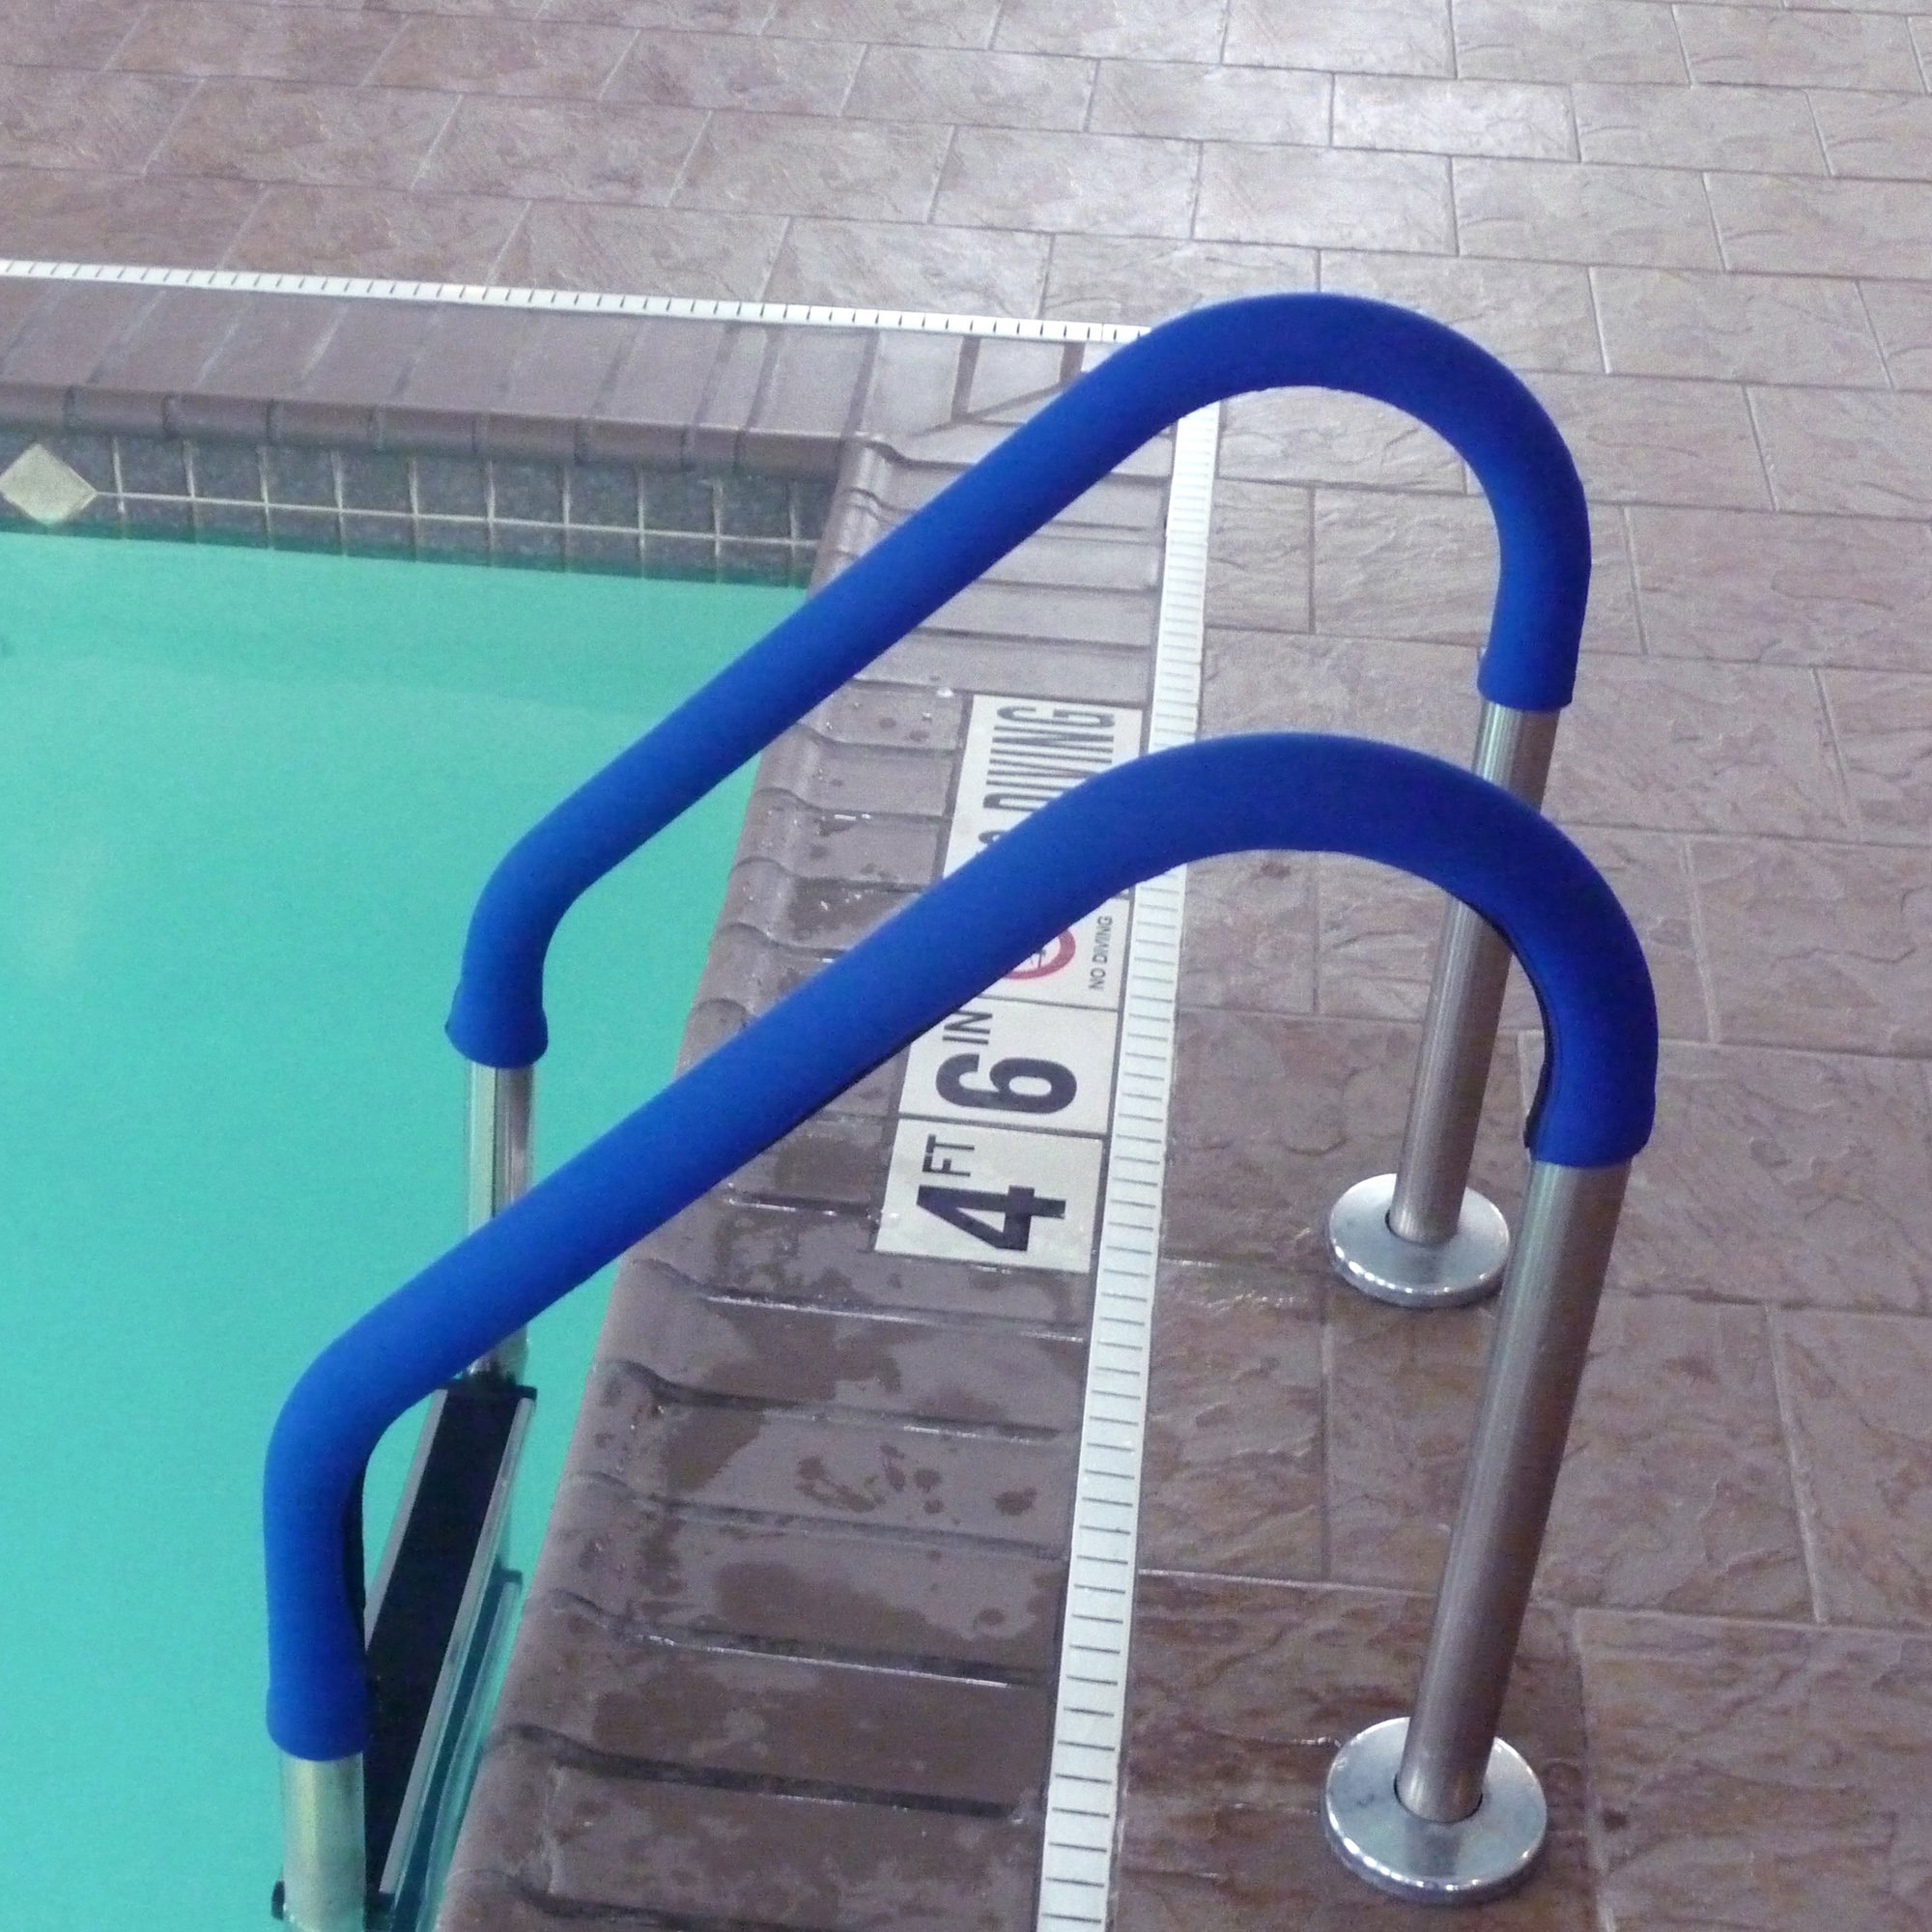 Blue Wave NE1253 Blue Grip for Pool Handrails, 8-Feet, Each (Sold individually, not in pairs) by Blue Wave